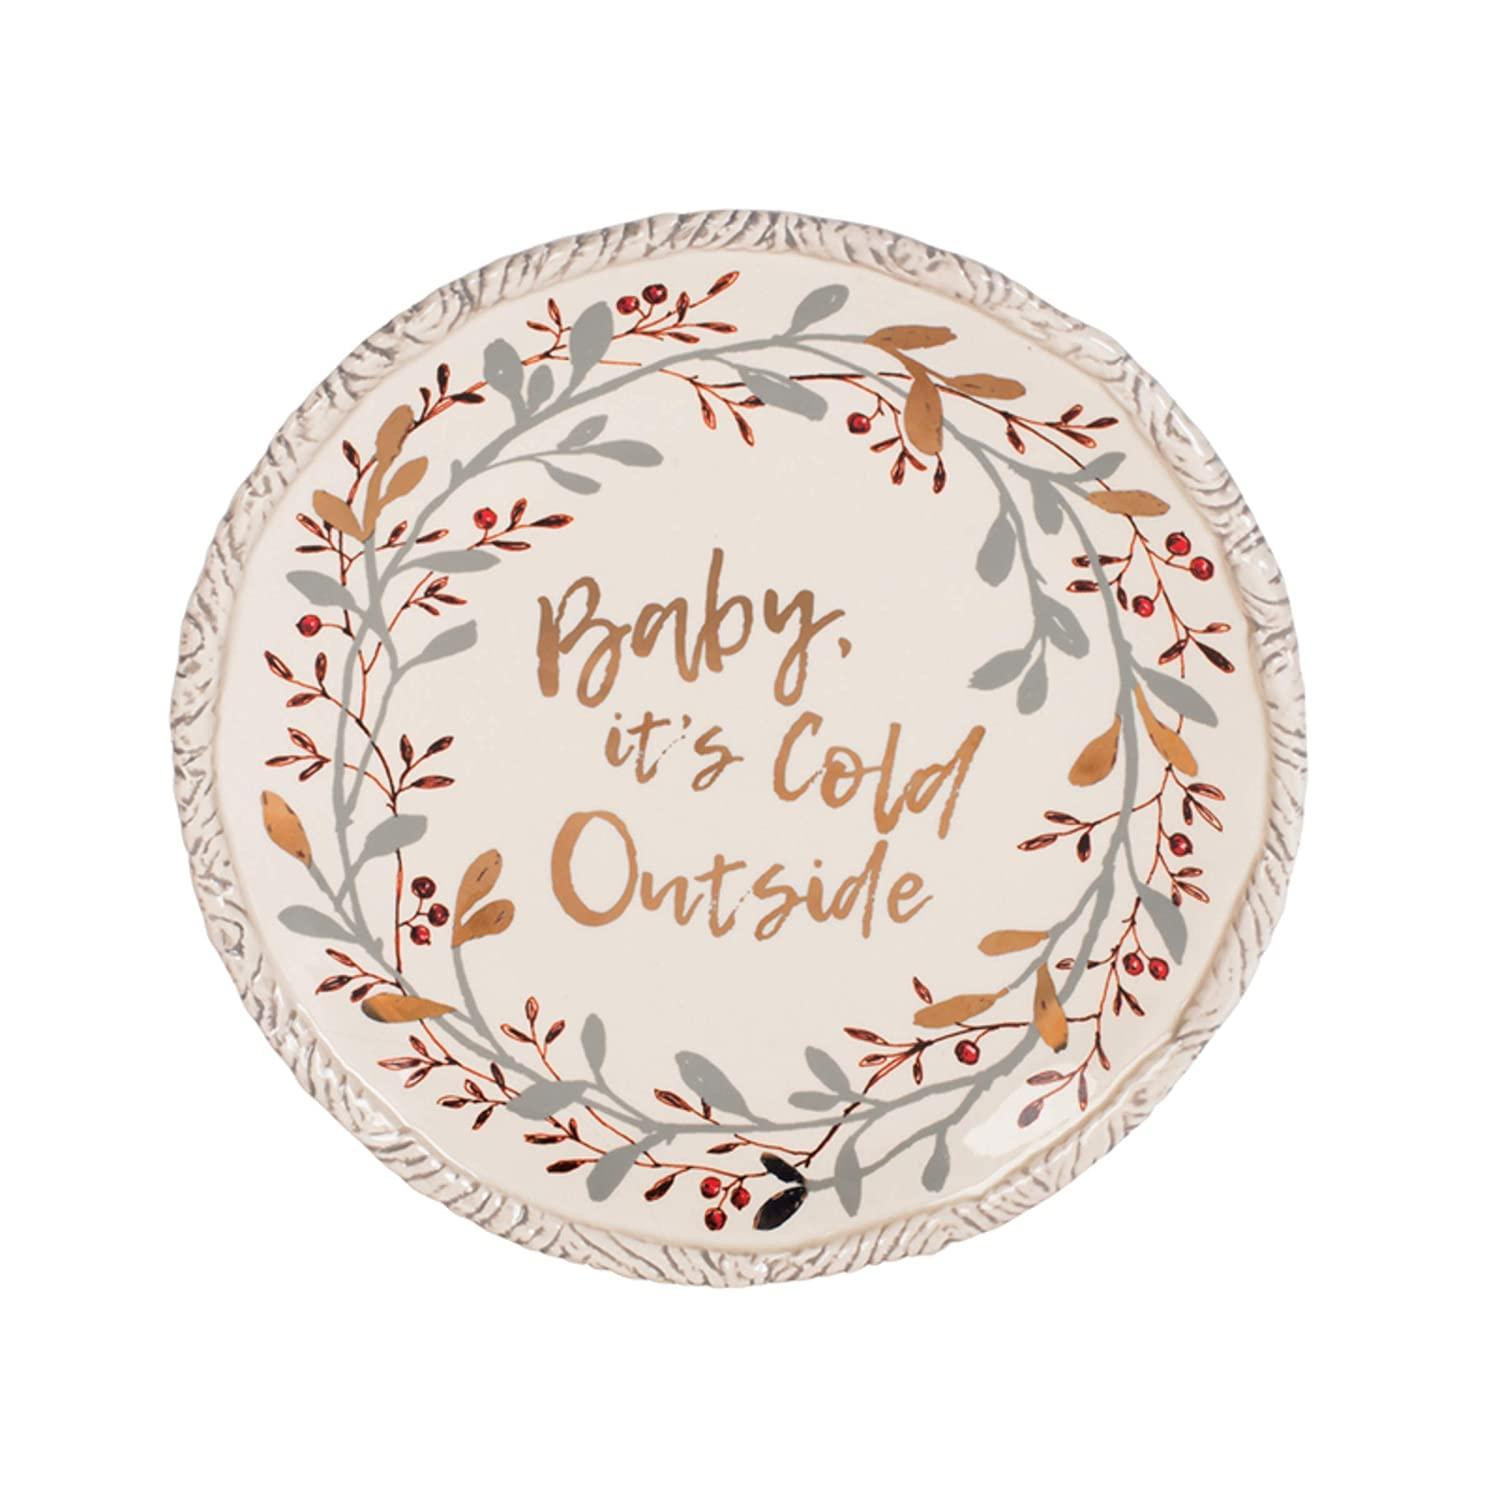 Fitz and Floyd 49-794 ウントリーウッド フットボウル スプレッダー付き 9.75-Inch  Holiday Serving/Sharing Plate B07G4VQ1VH